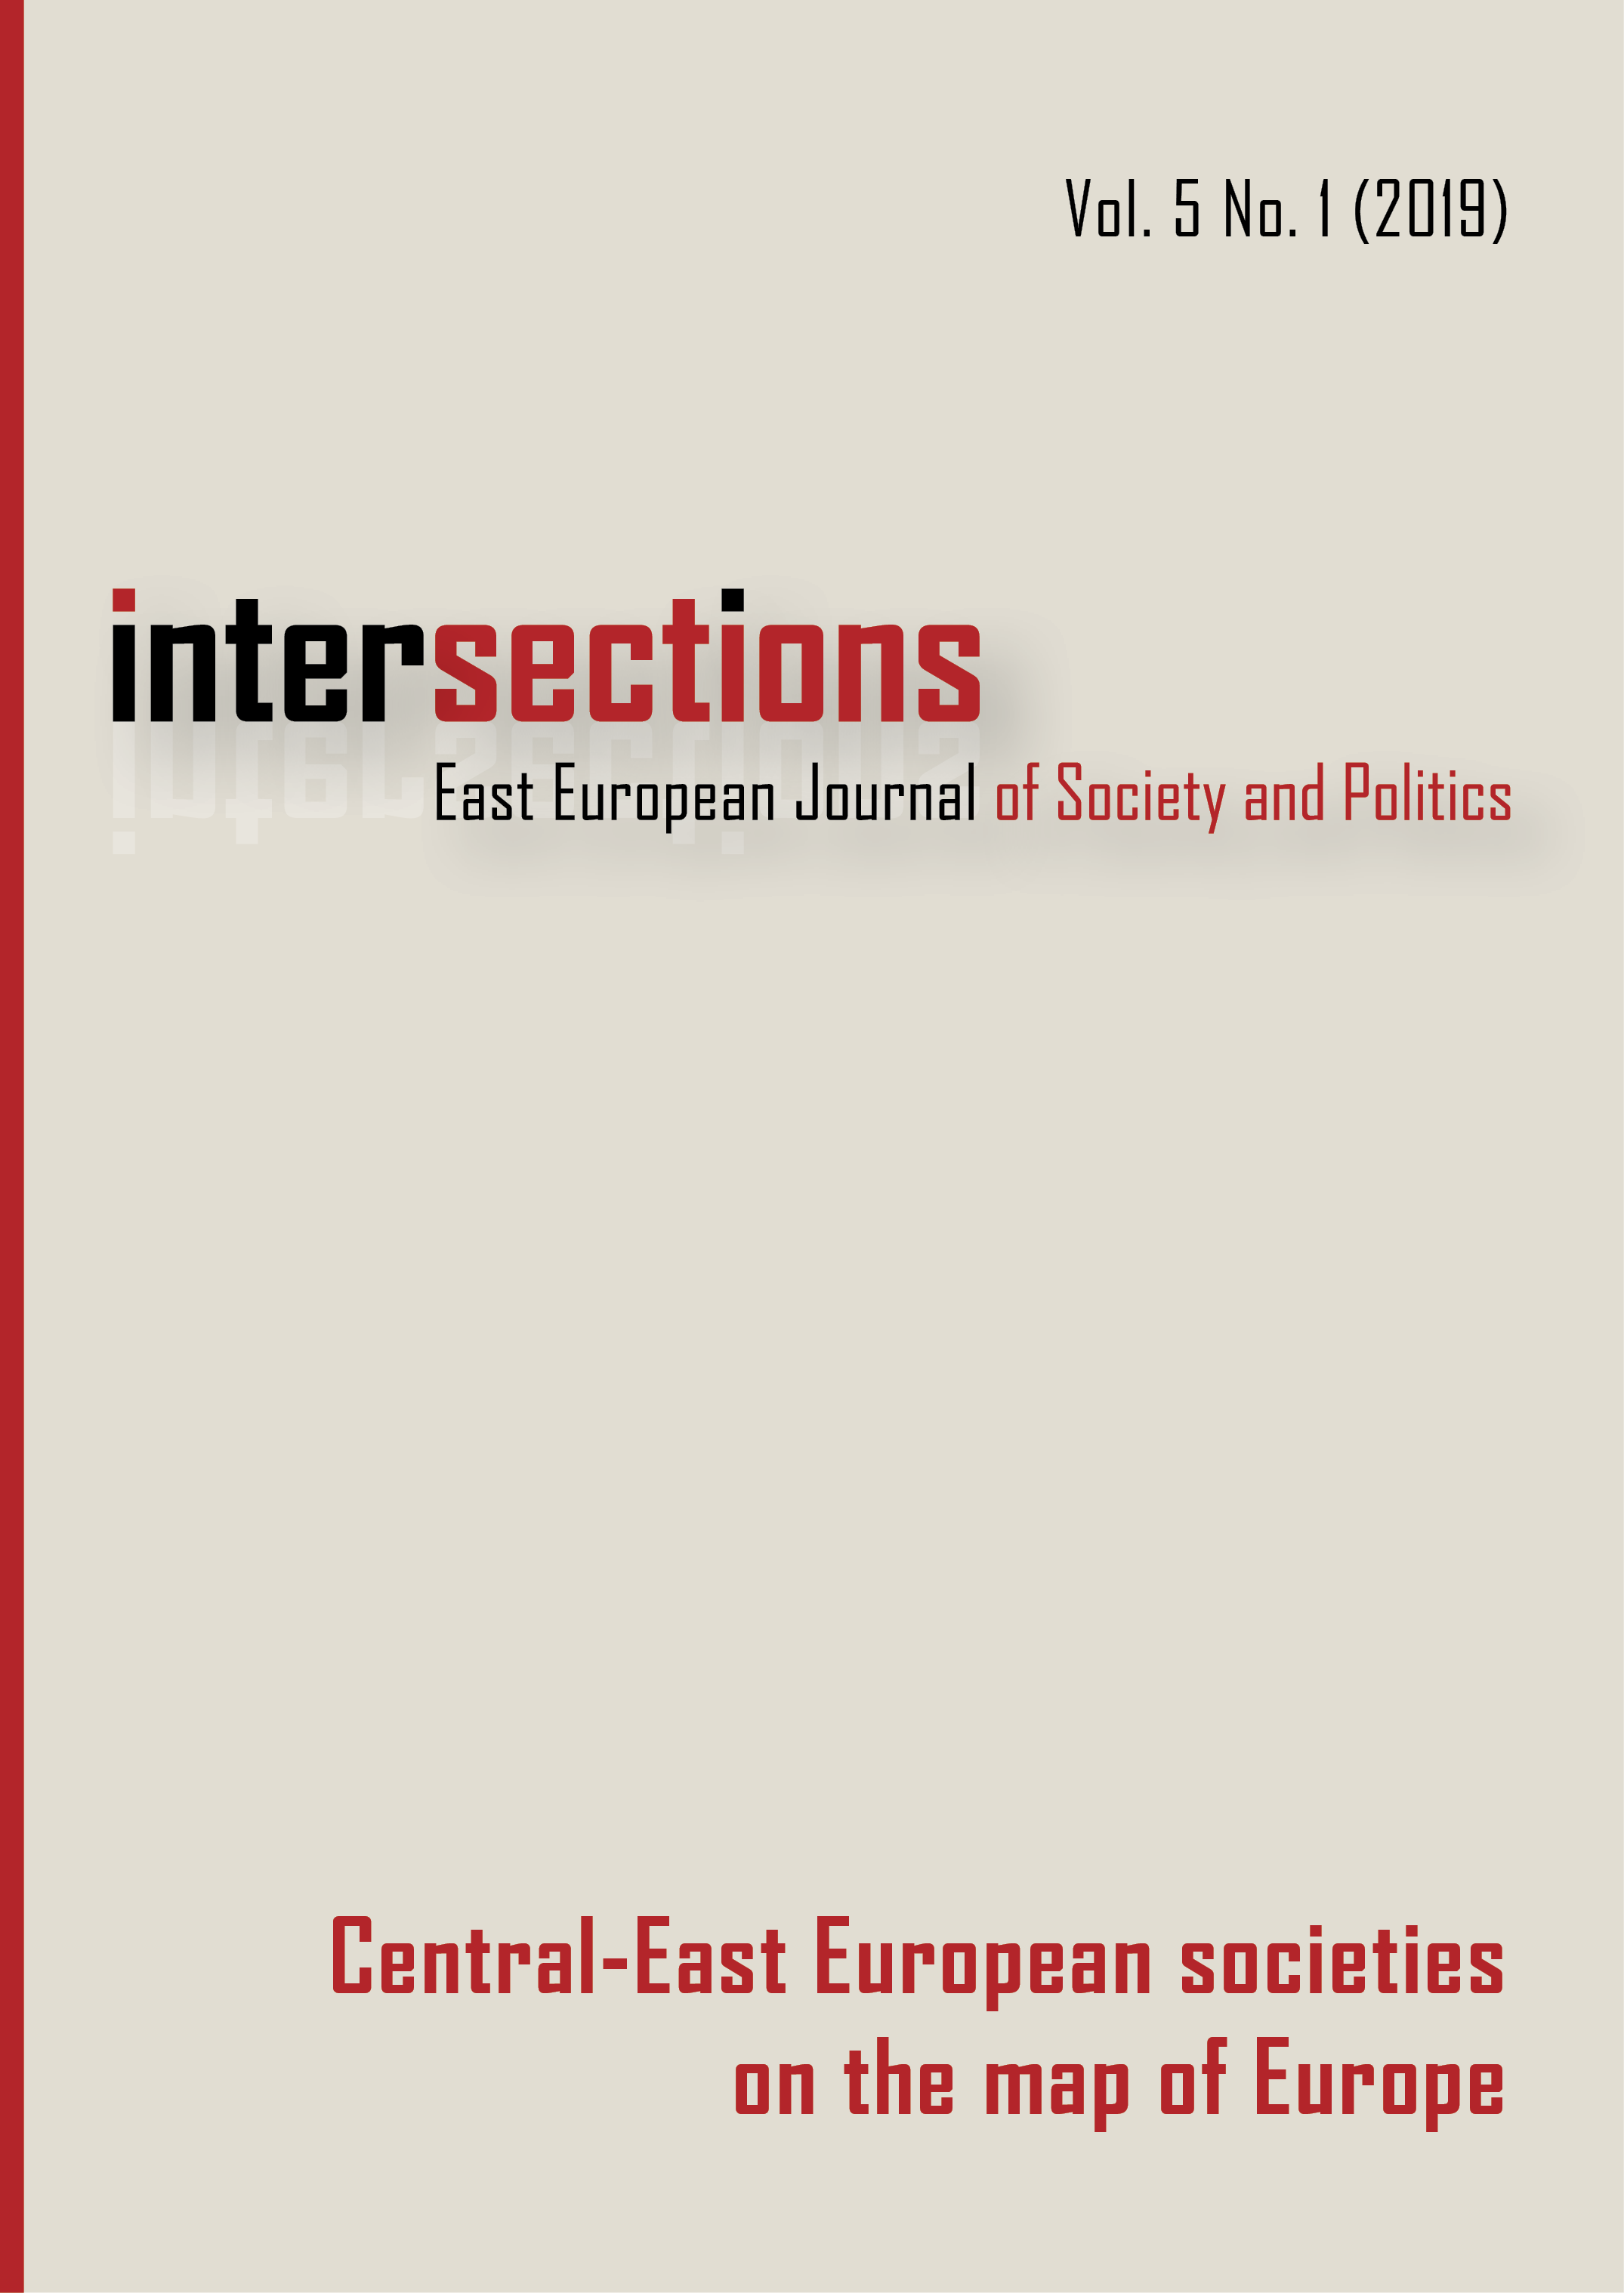 View Vol. 5 No. 1 (2019): Central-East European societies on the map of Europe